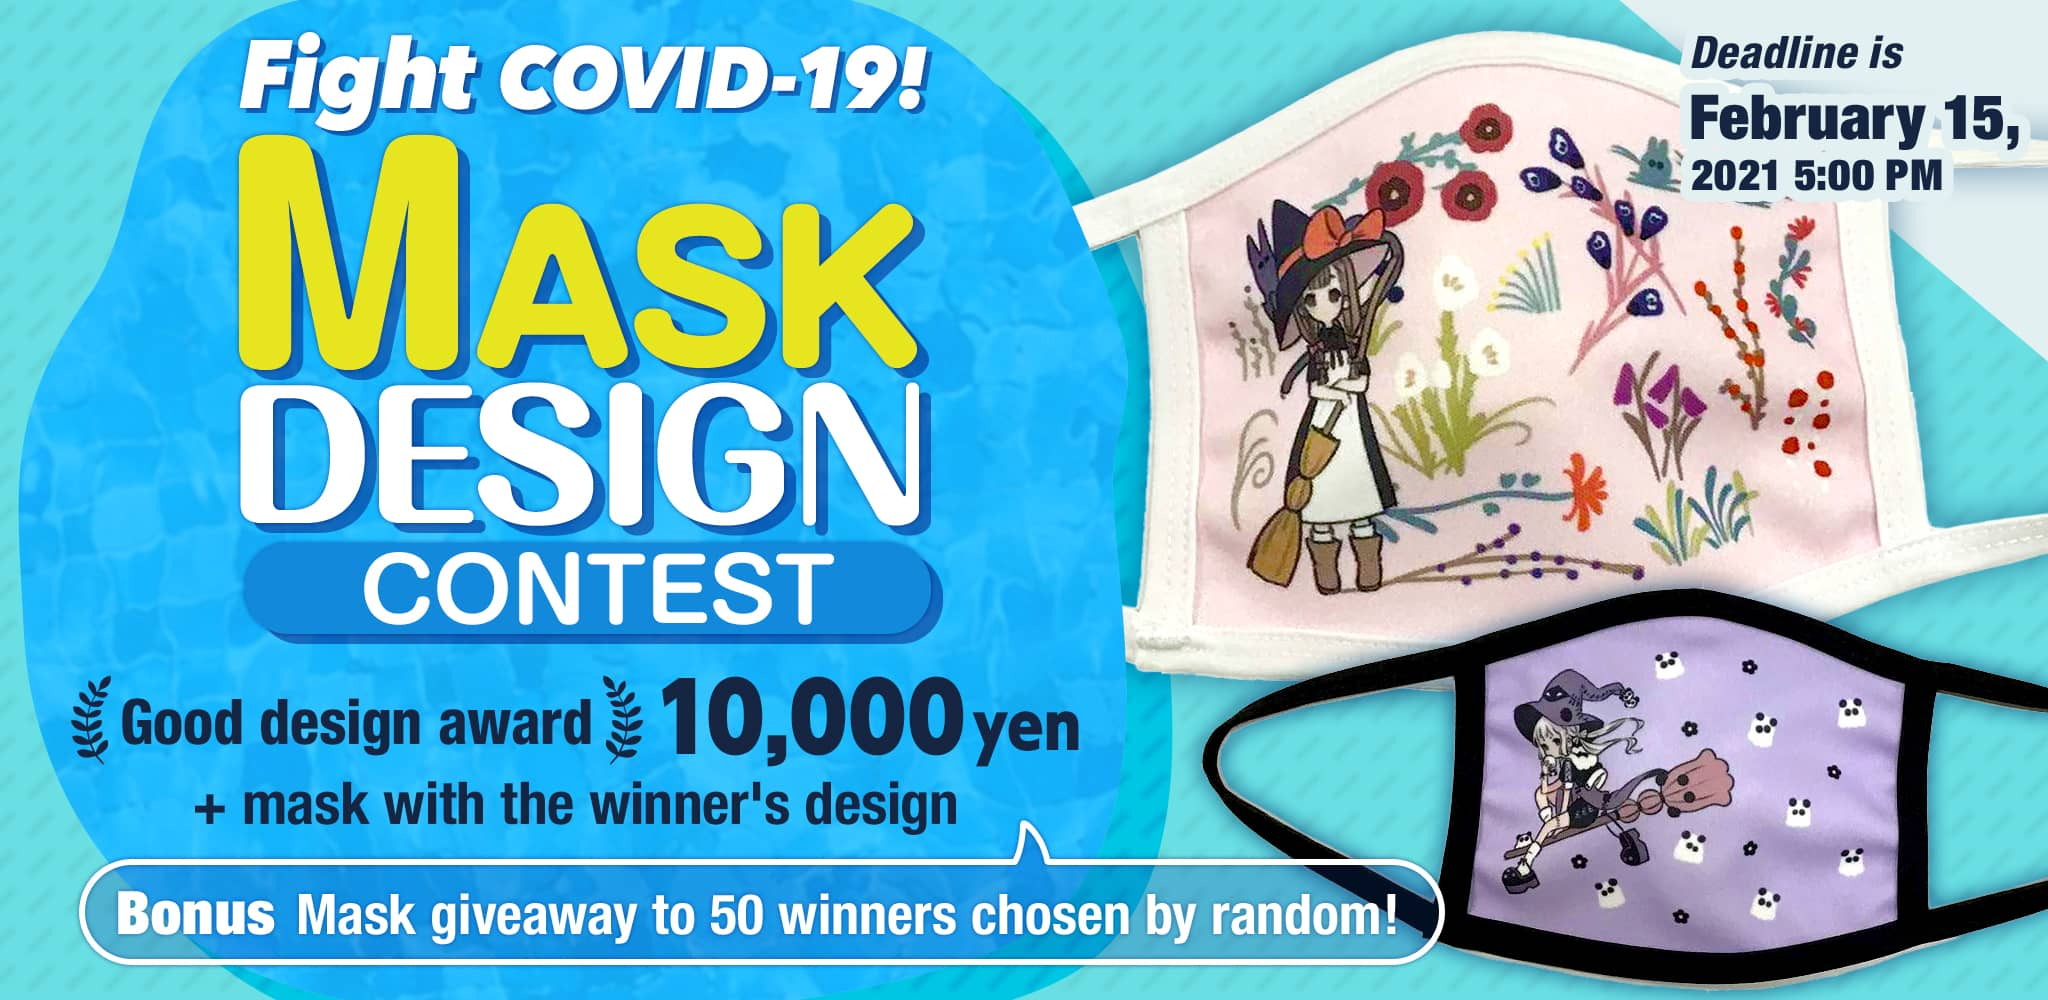 Mask design contest| Contest - ART street by MediBang